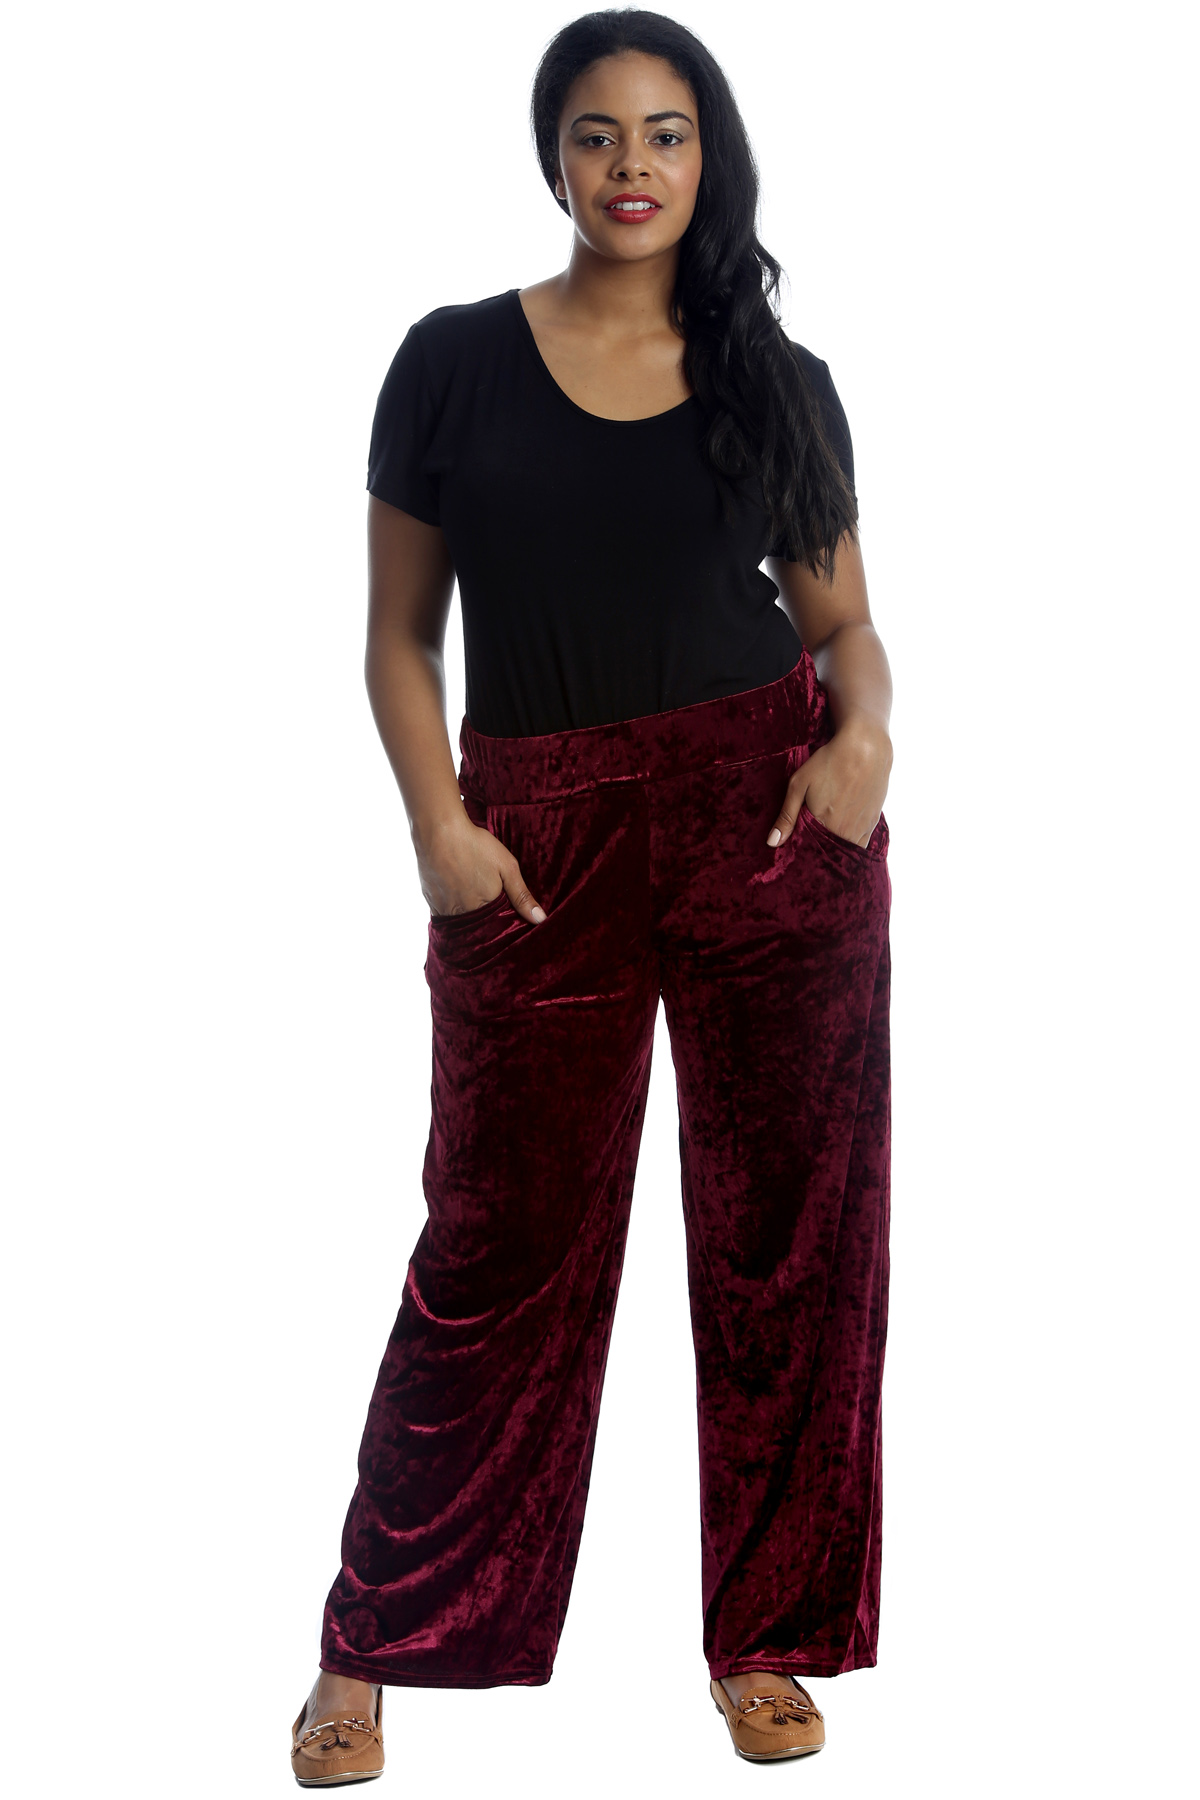 Find womens plus size sweatpants at Macy's Macy's Presents: The Edit - A curated mix of fashion and inspiration Check It Out Free Shipping with $75 purchase + Free Store Pickup.